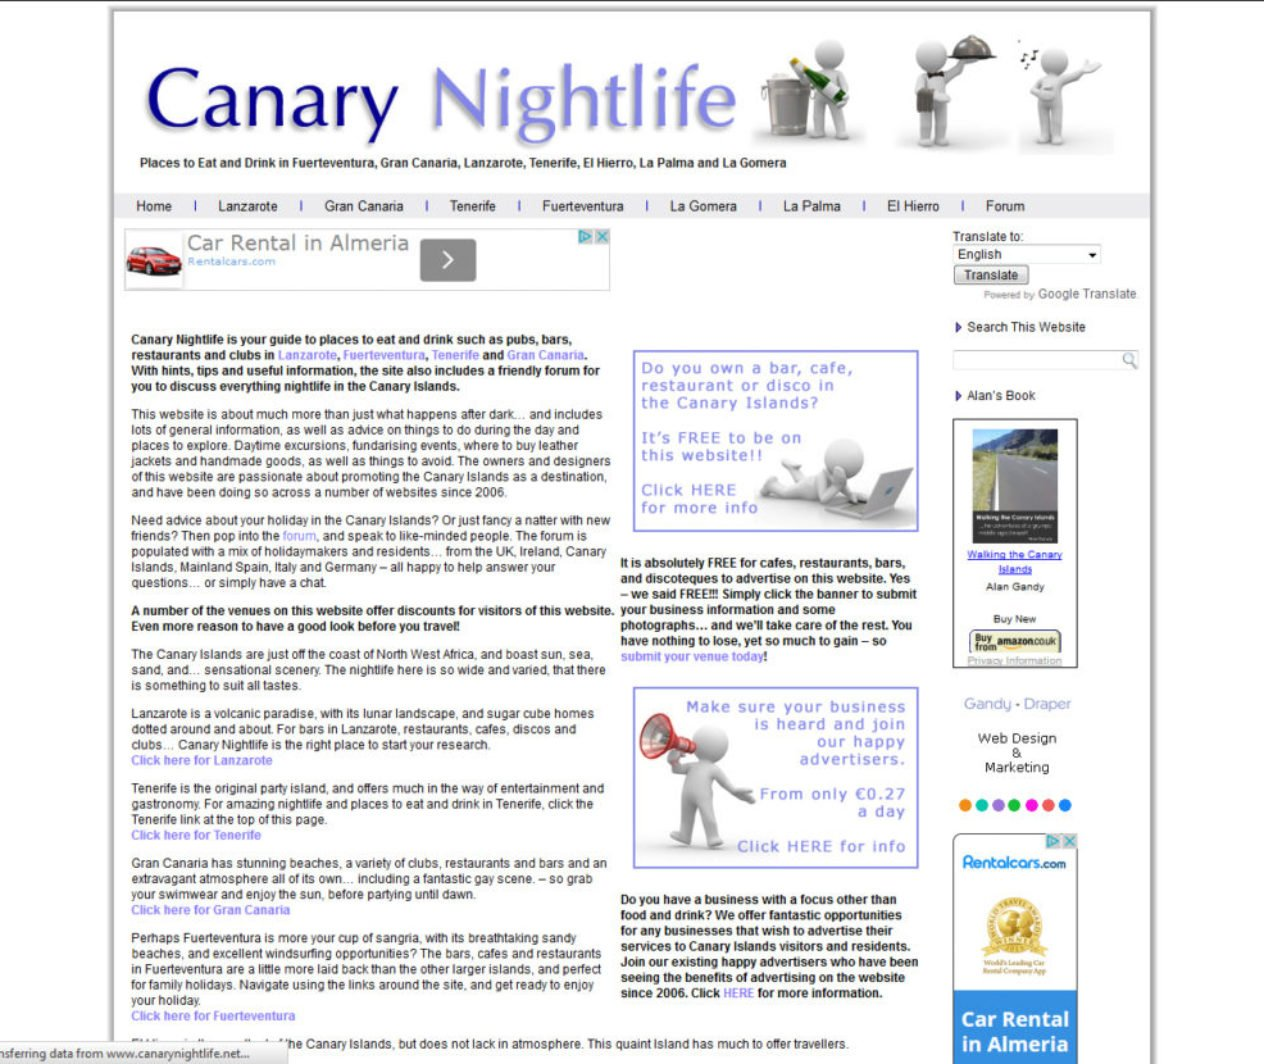 Canary Nightlife